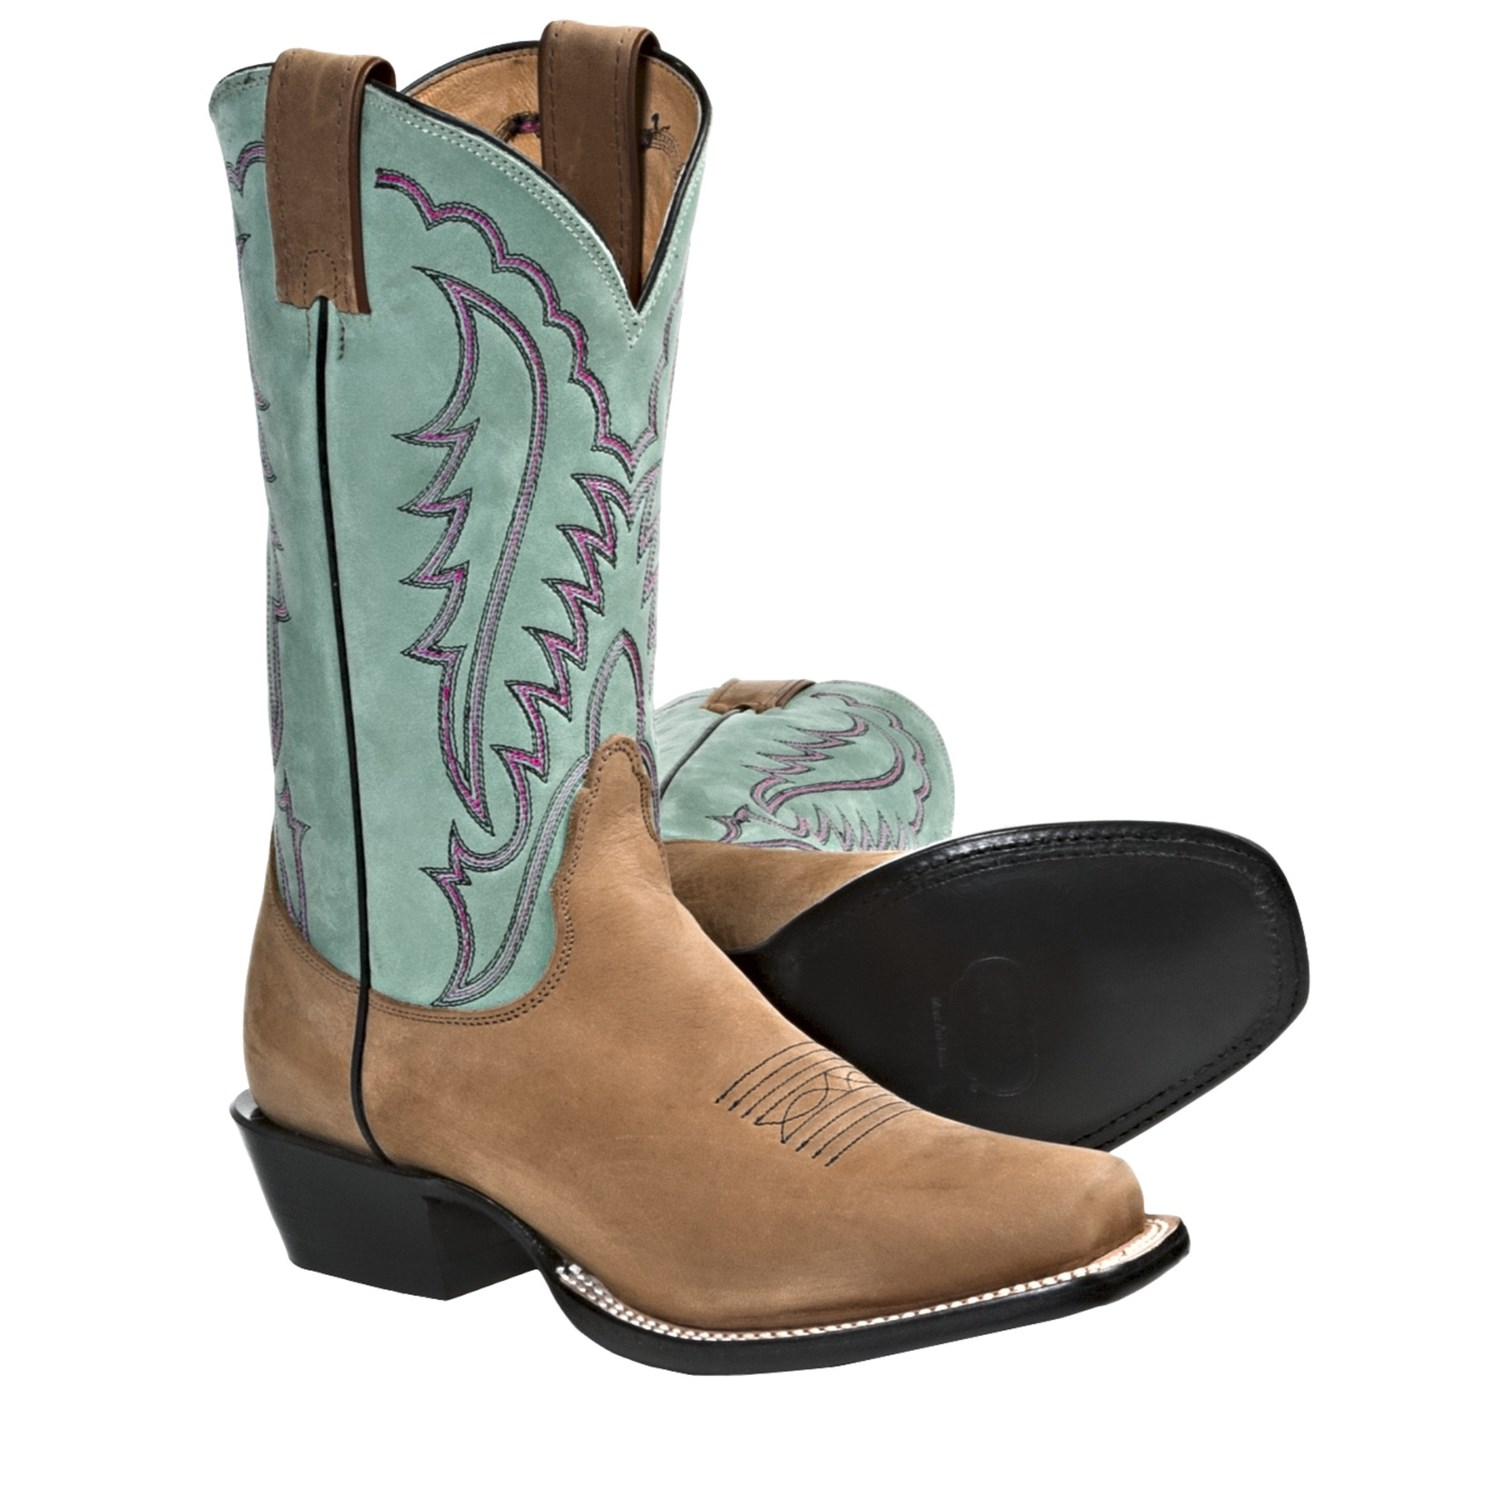 nocona boots 11 square toe cowboy boots leather for